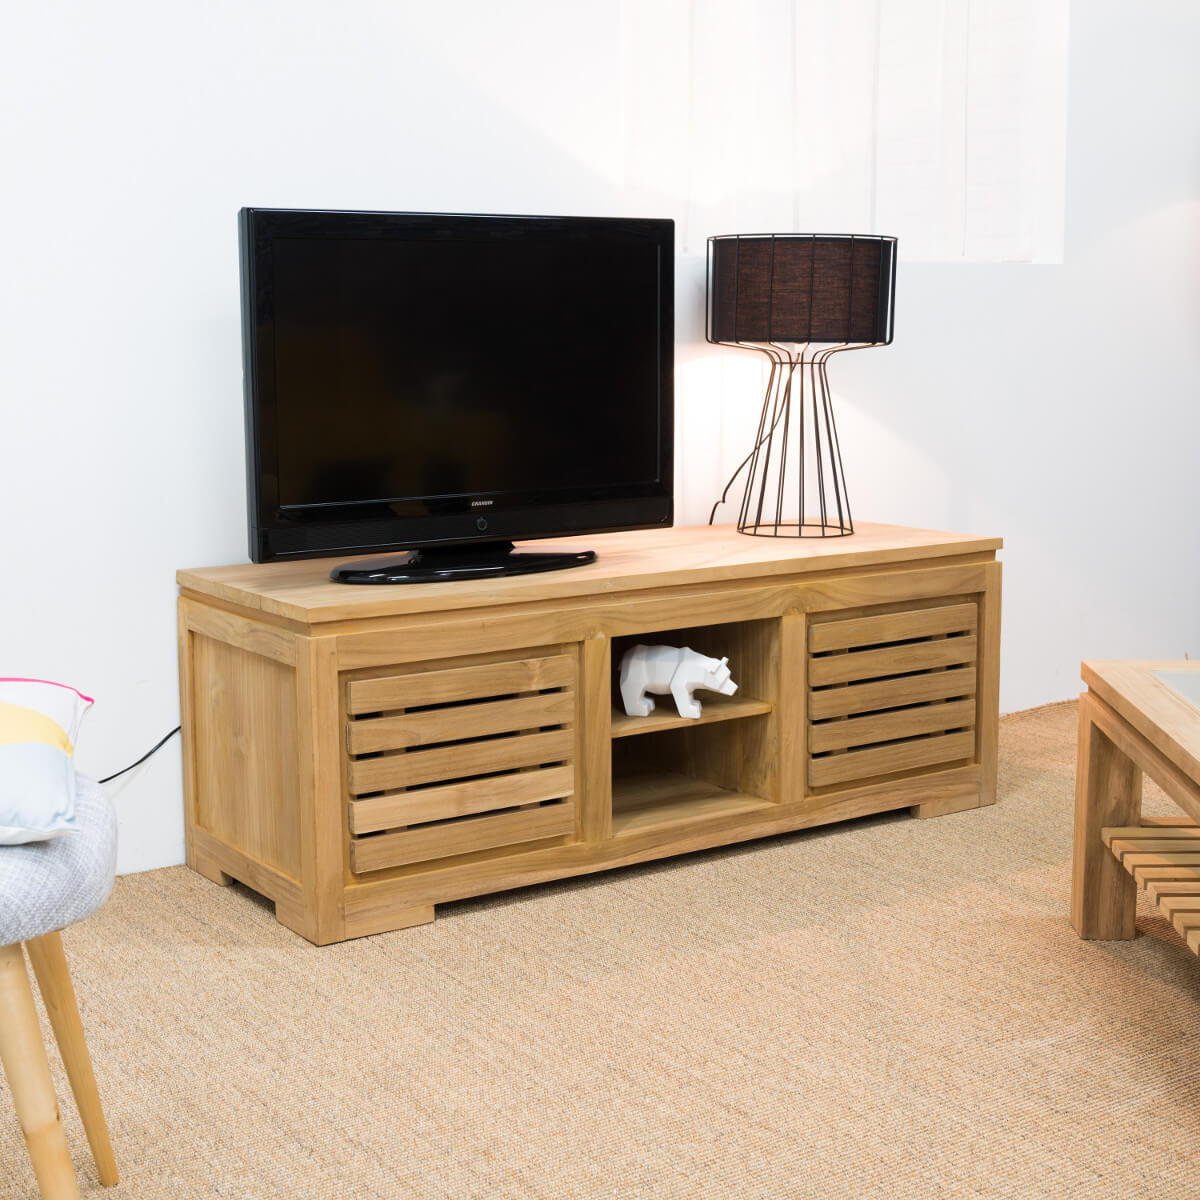 Meuble tv teck meuble tv bois naturel rectangle zen for Meuble tele bois design